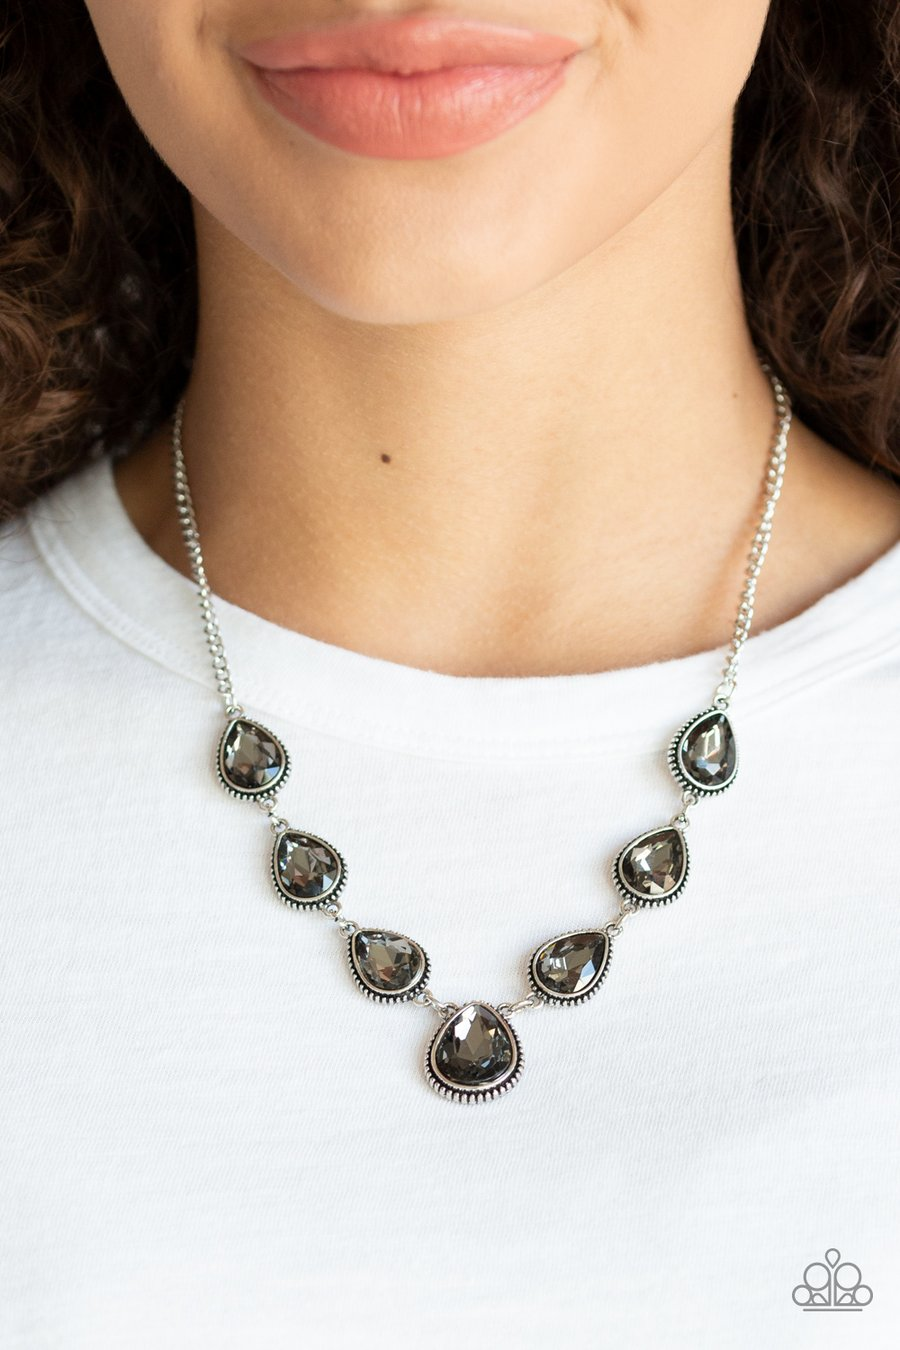 Paparazzi Accessories Socialite Social - Silver Necklaces - Lady T Accessories